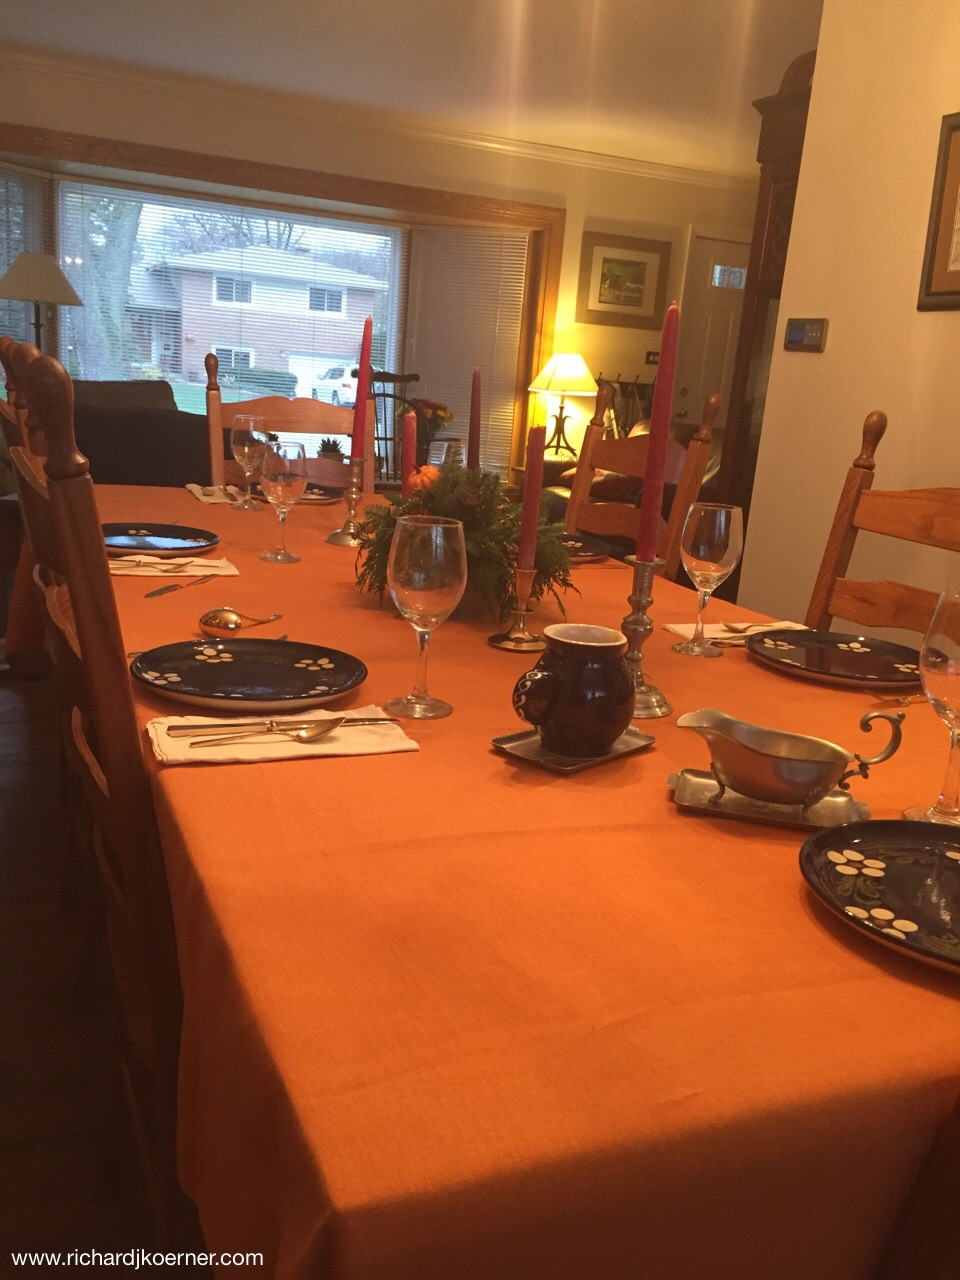 Hungarian tablecloth, Swedish cutlery (dirilyte), French potter dishes (Soufflenheim), German bowls (matching and not visible here), an international table.